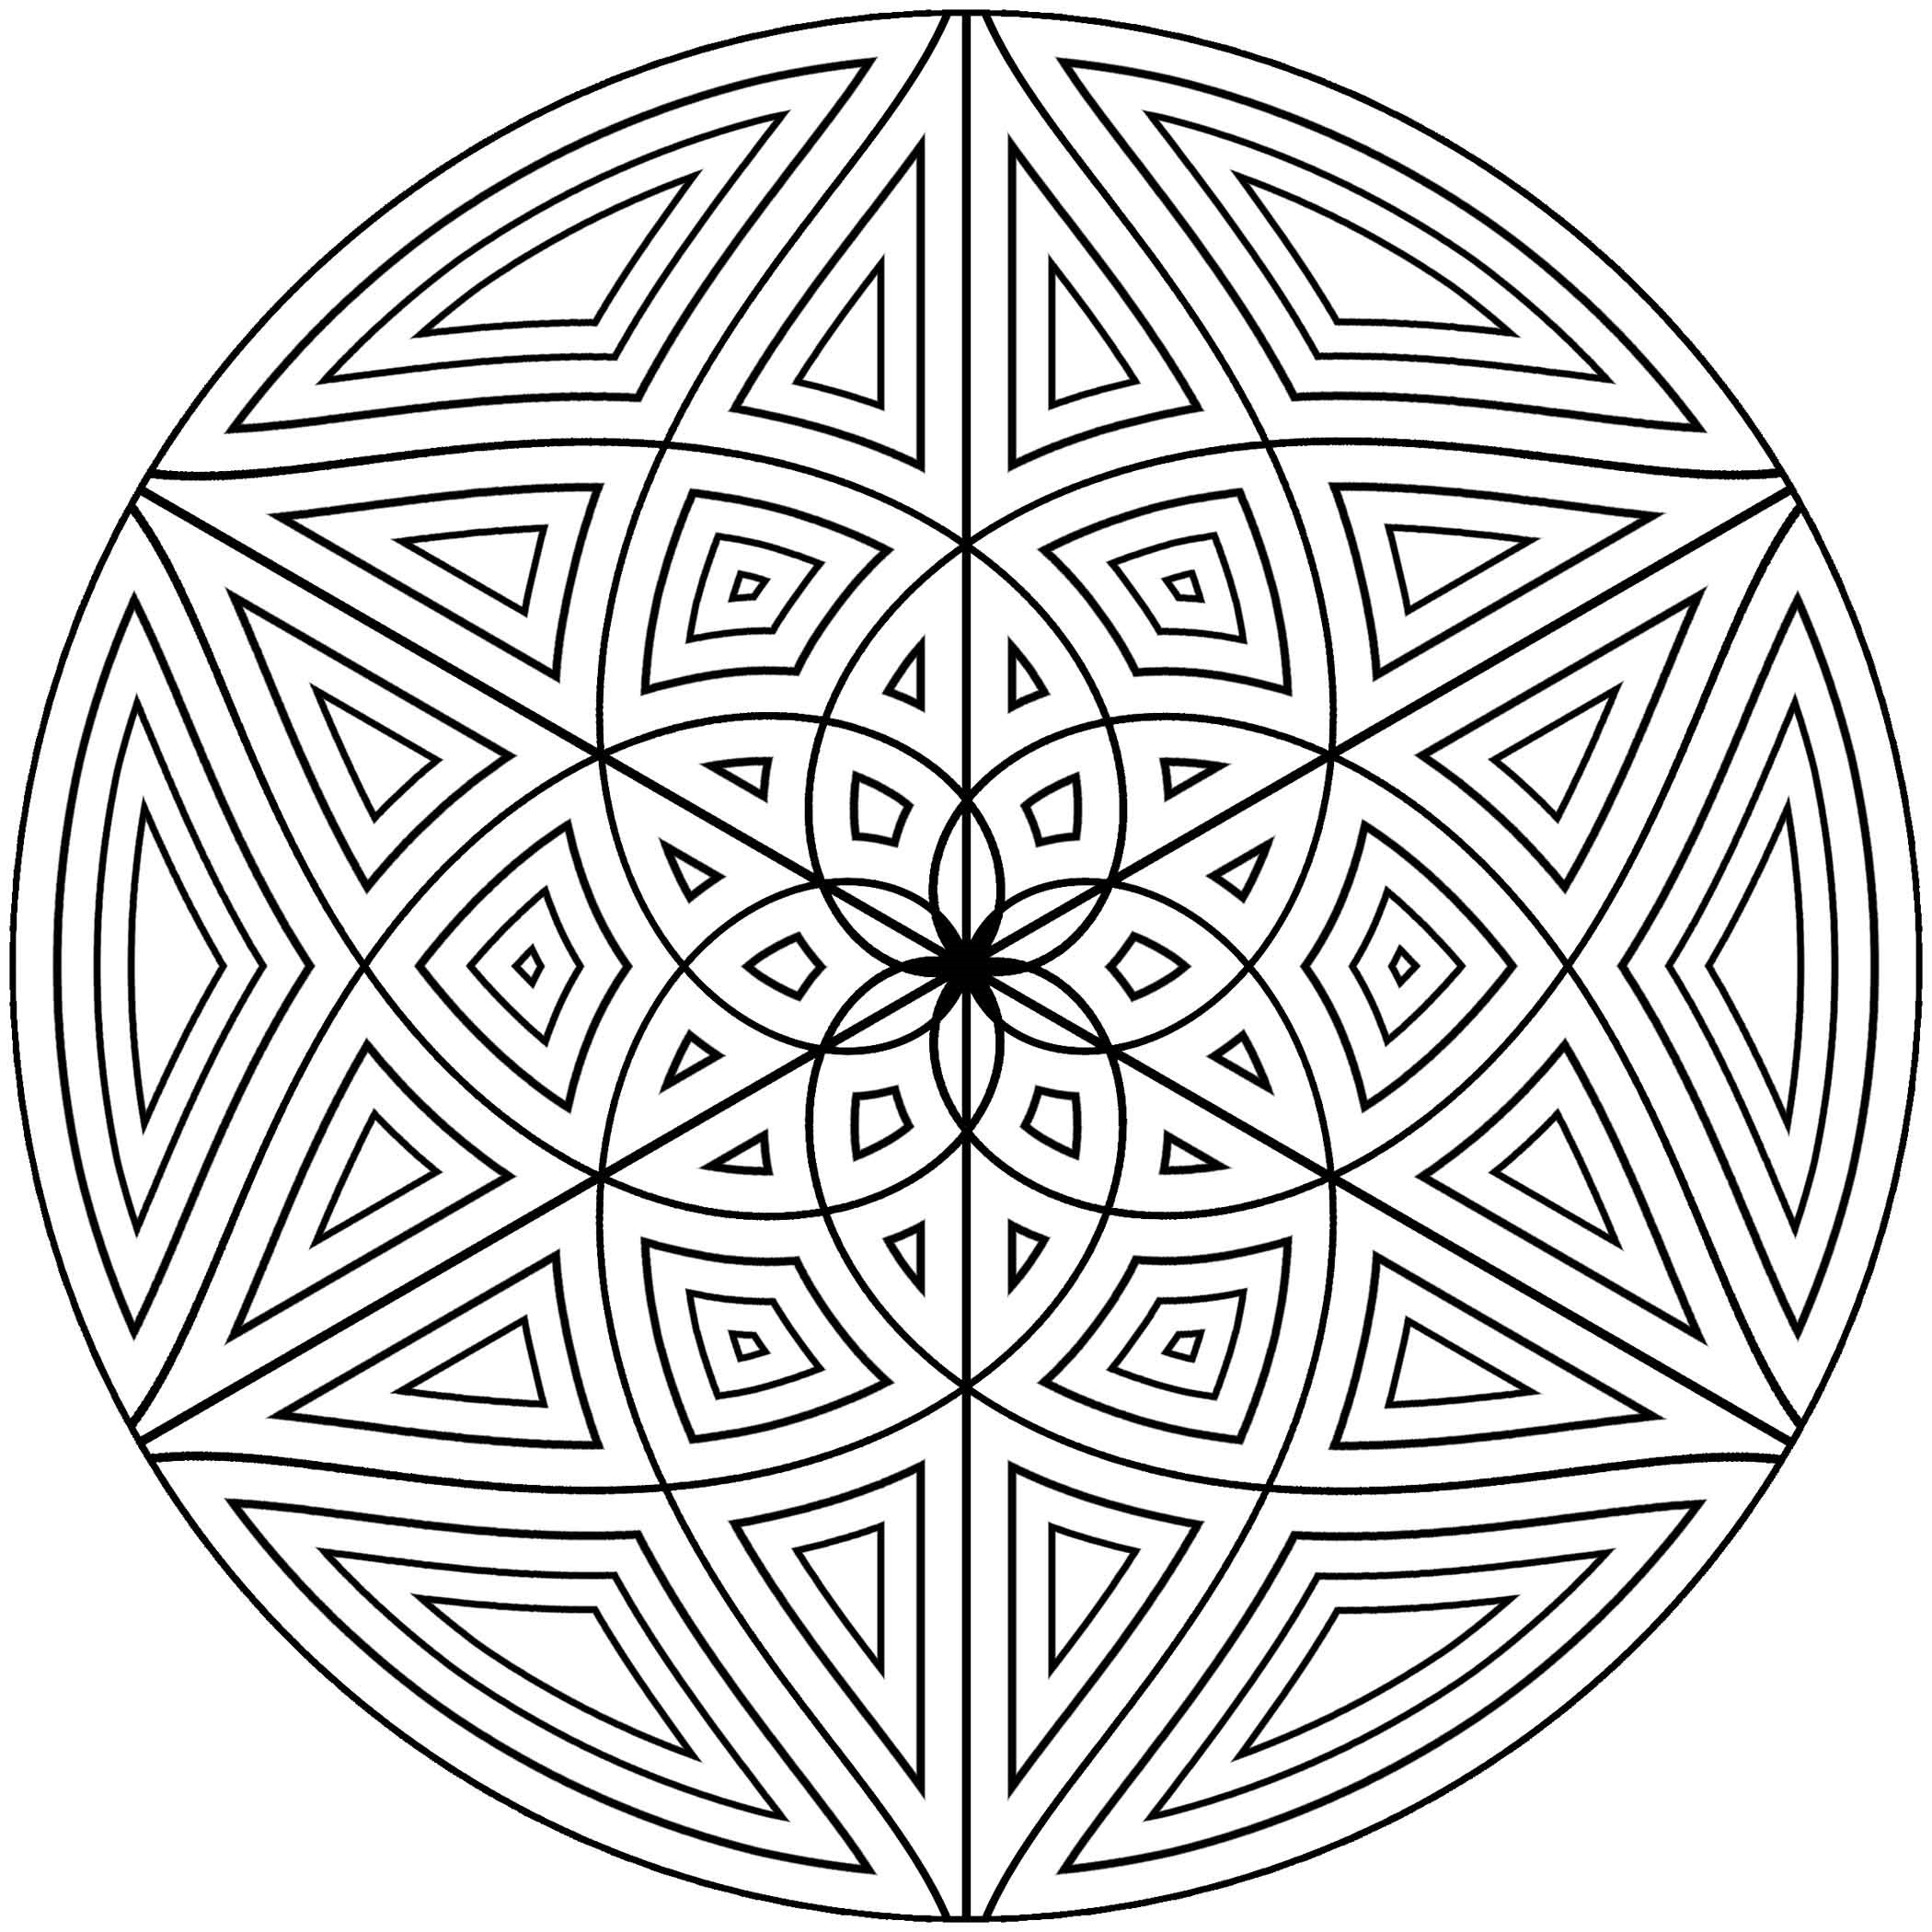 coloring pages cool designs free printable geometric coloring pages for adults designs pages cool coloring